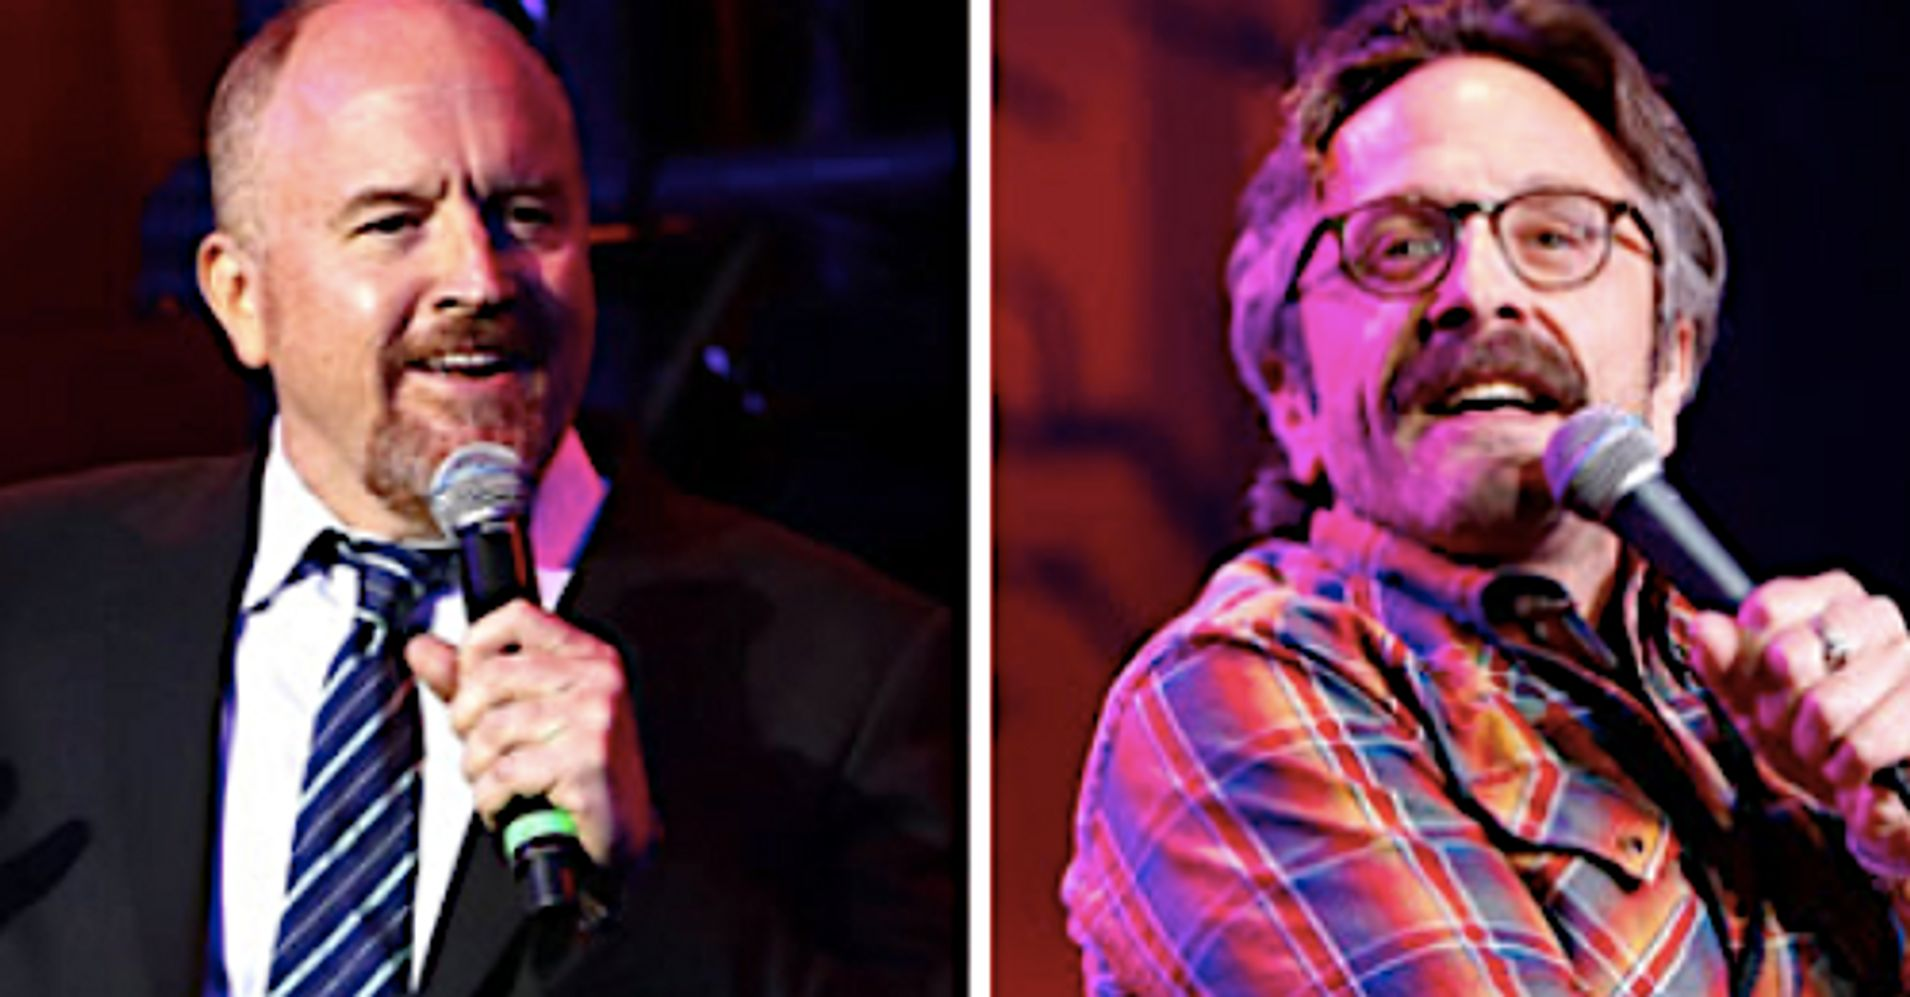 39 i 39 m disappointed in my friend 39 comedian marc maron says. Black Bedroom Furniture Sets. Home Design Ideas